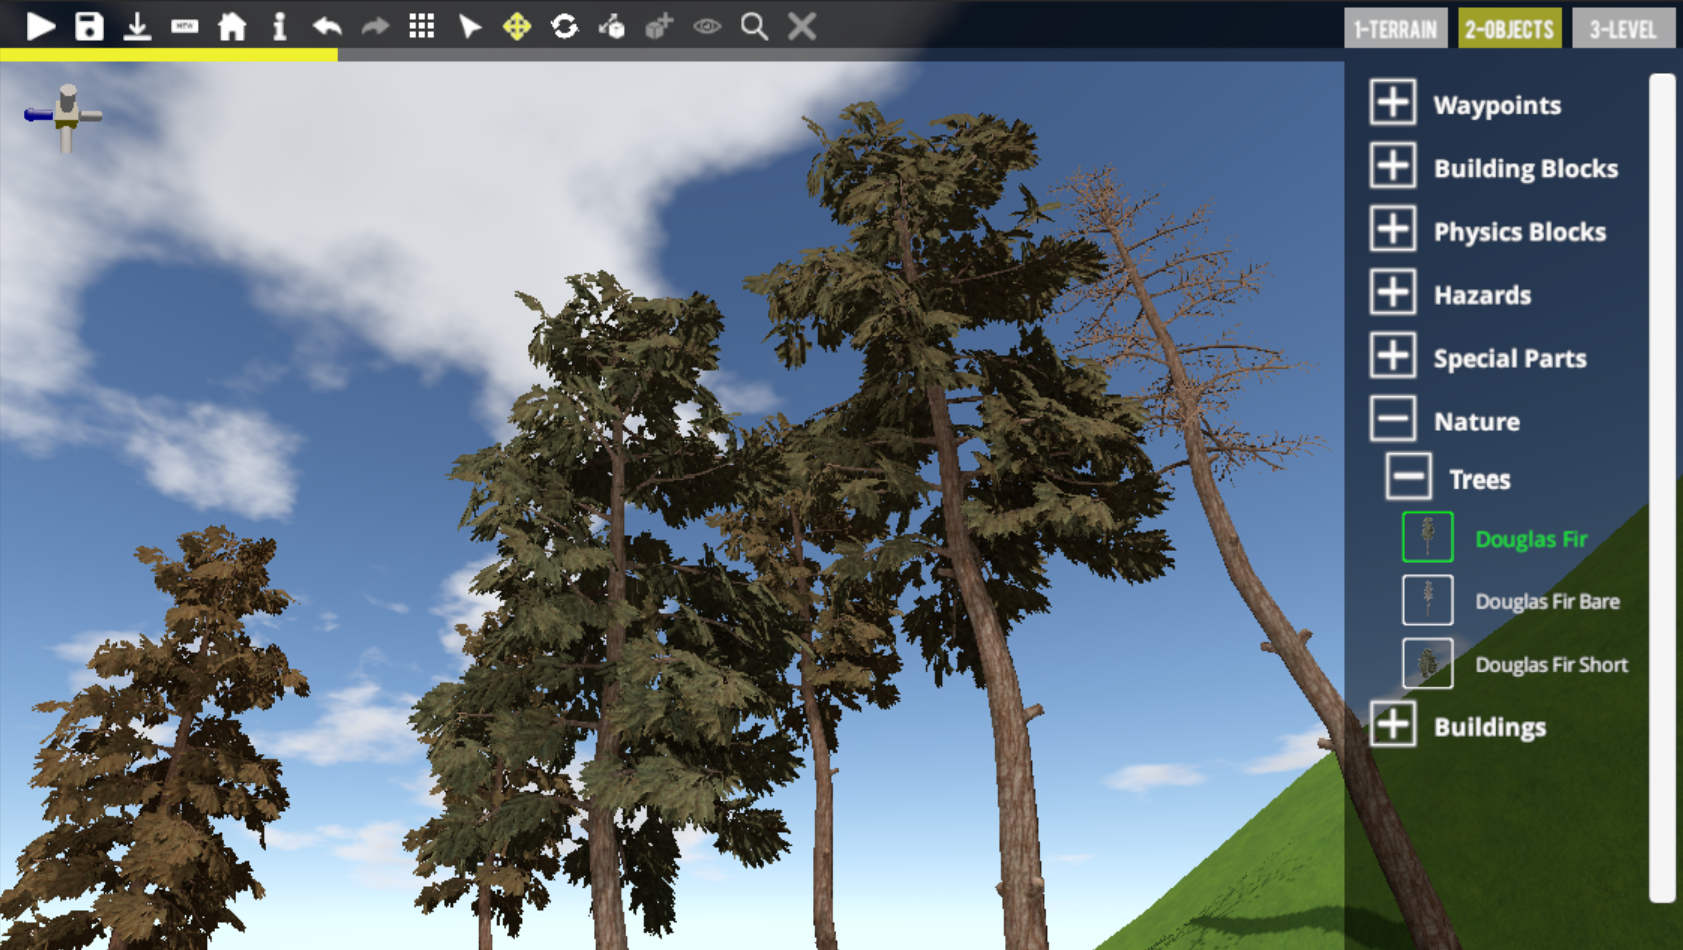 Spruce up your levels with some Spruce trees! ... err... Douglas Fir trees